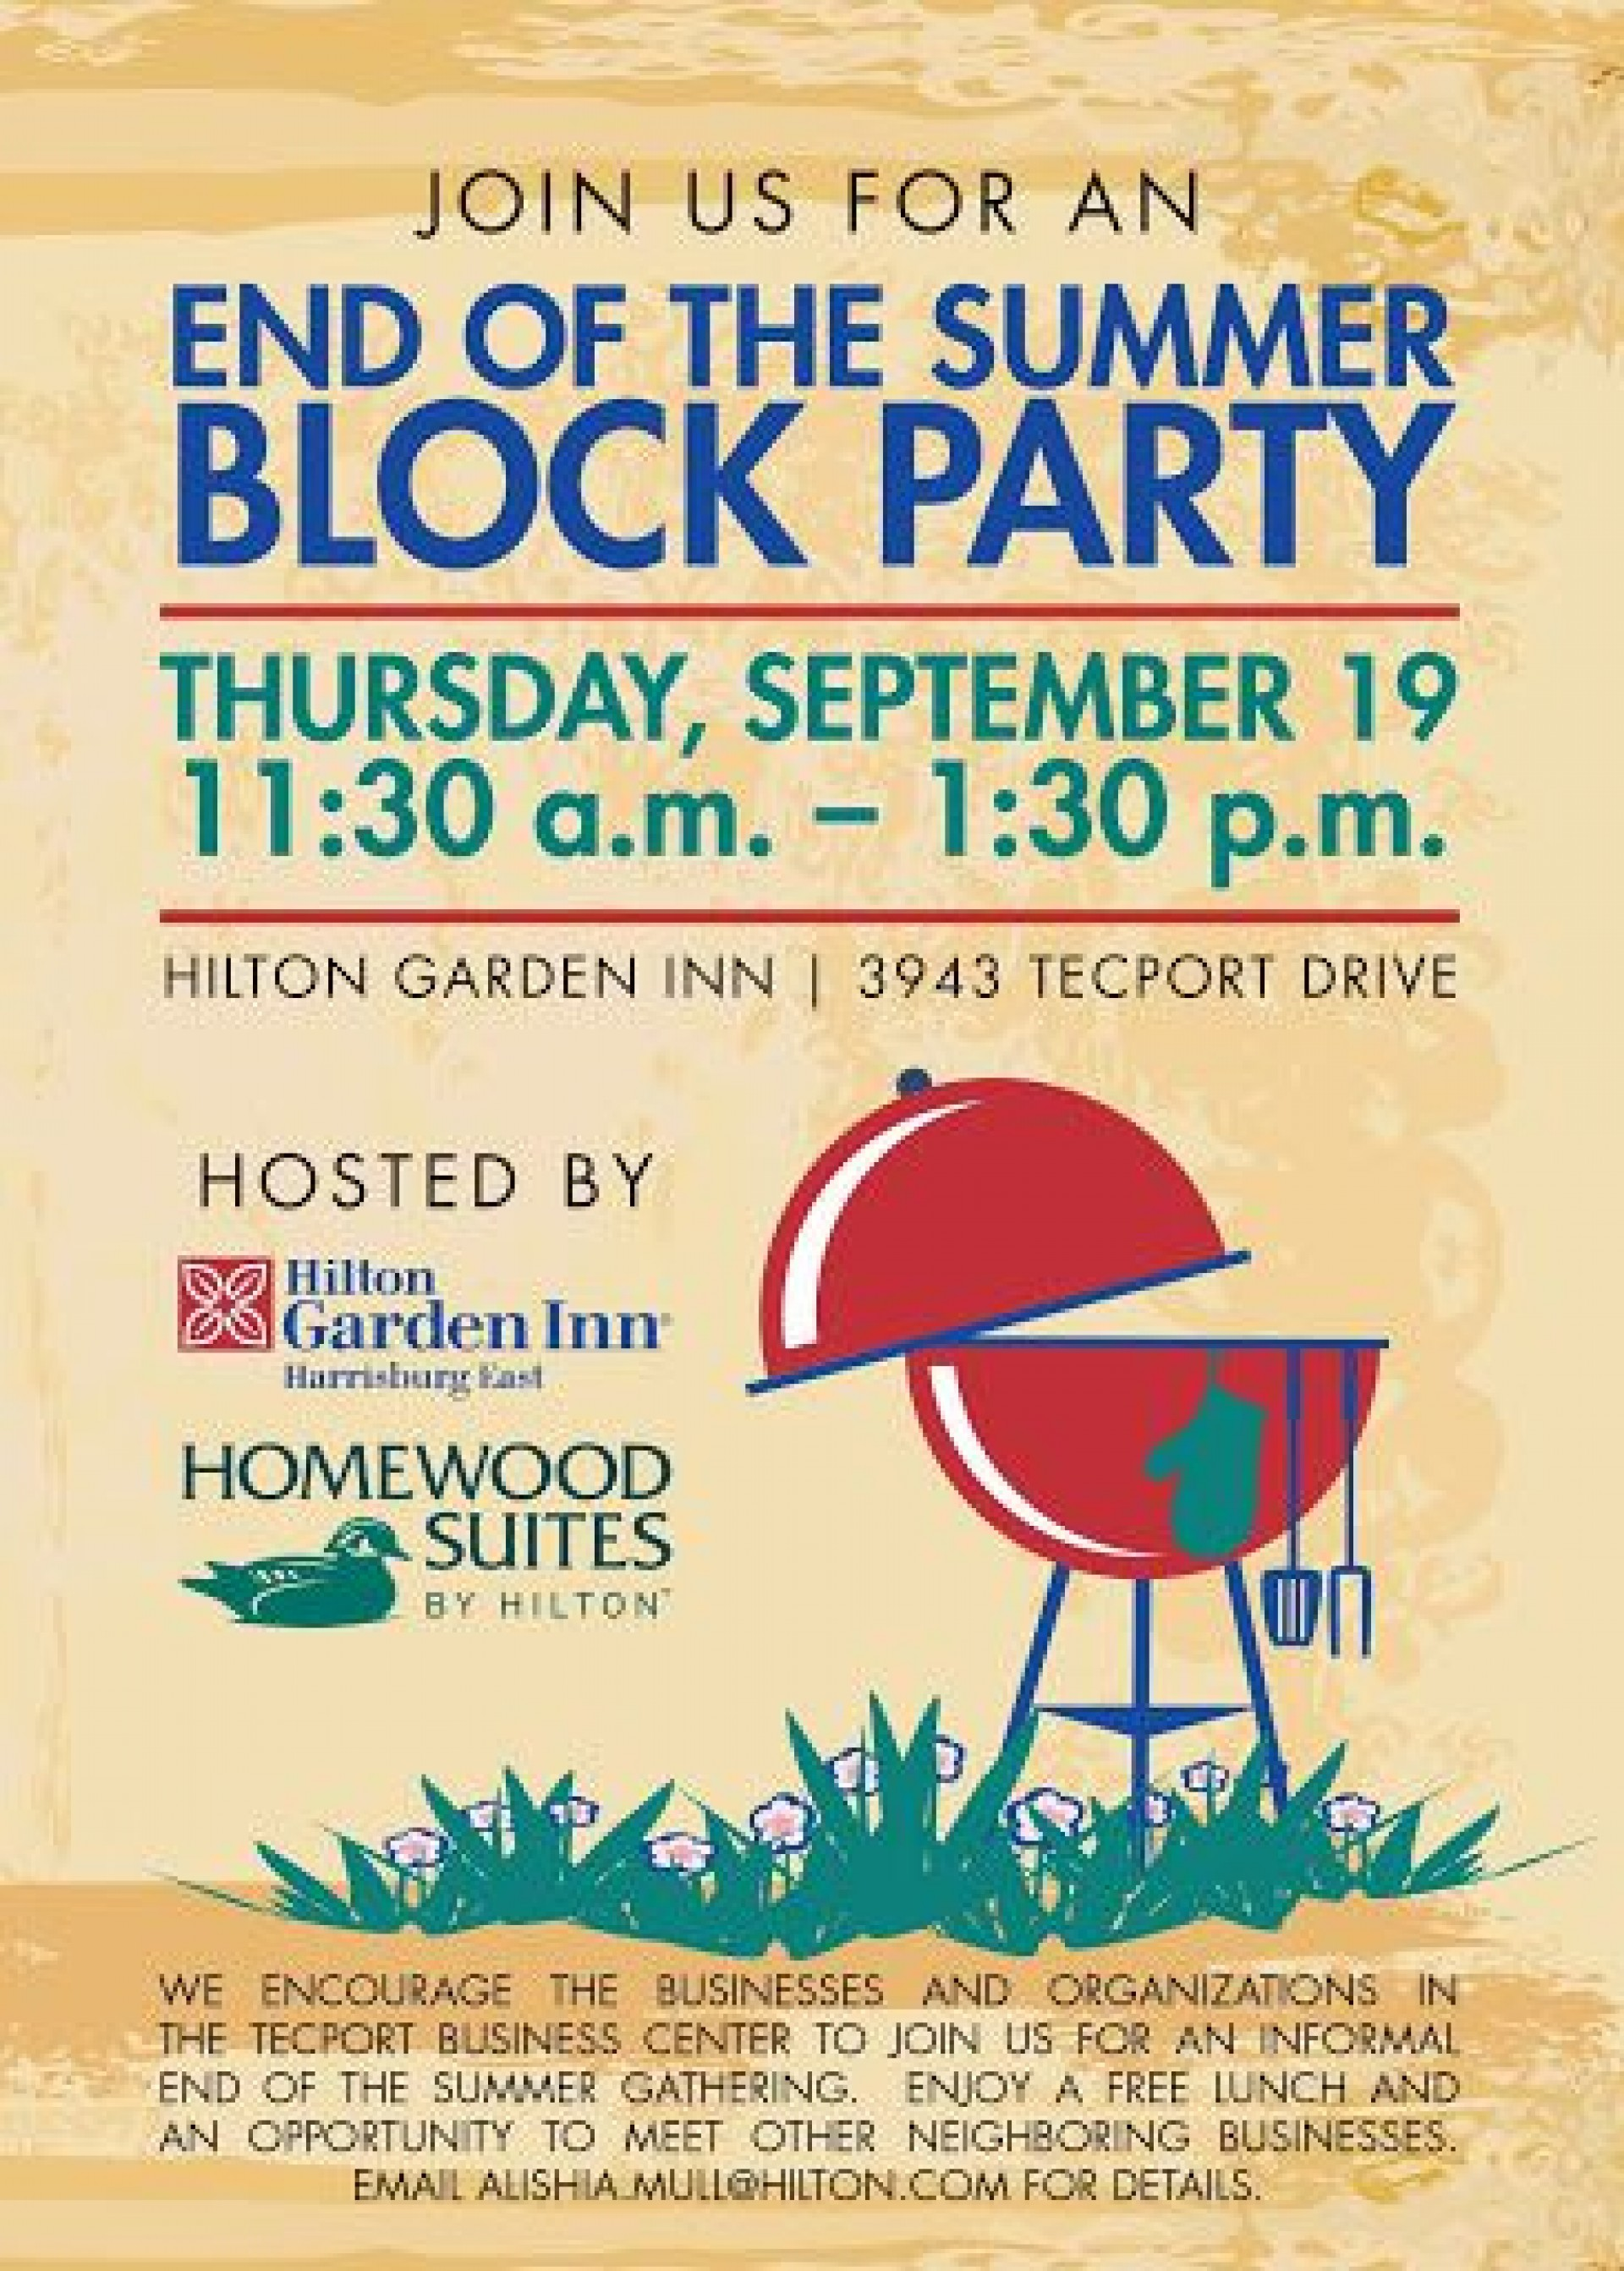 010 Wonderful Block Party Flyer Template Photo  Templates1920